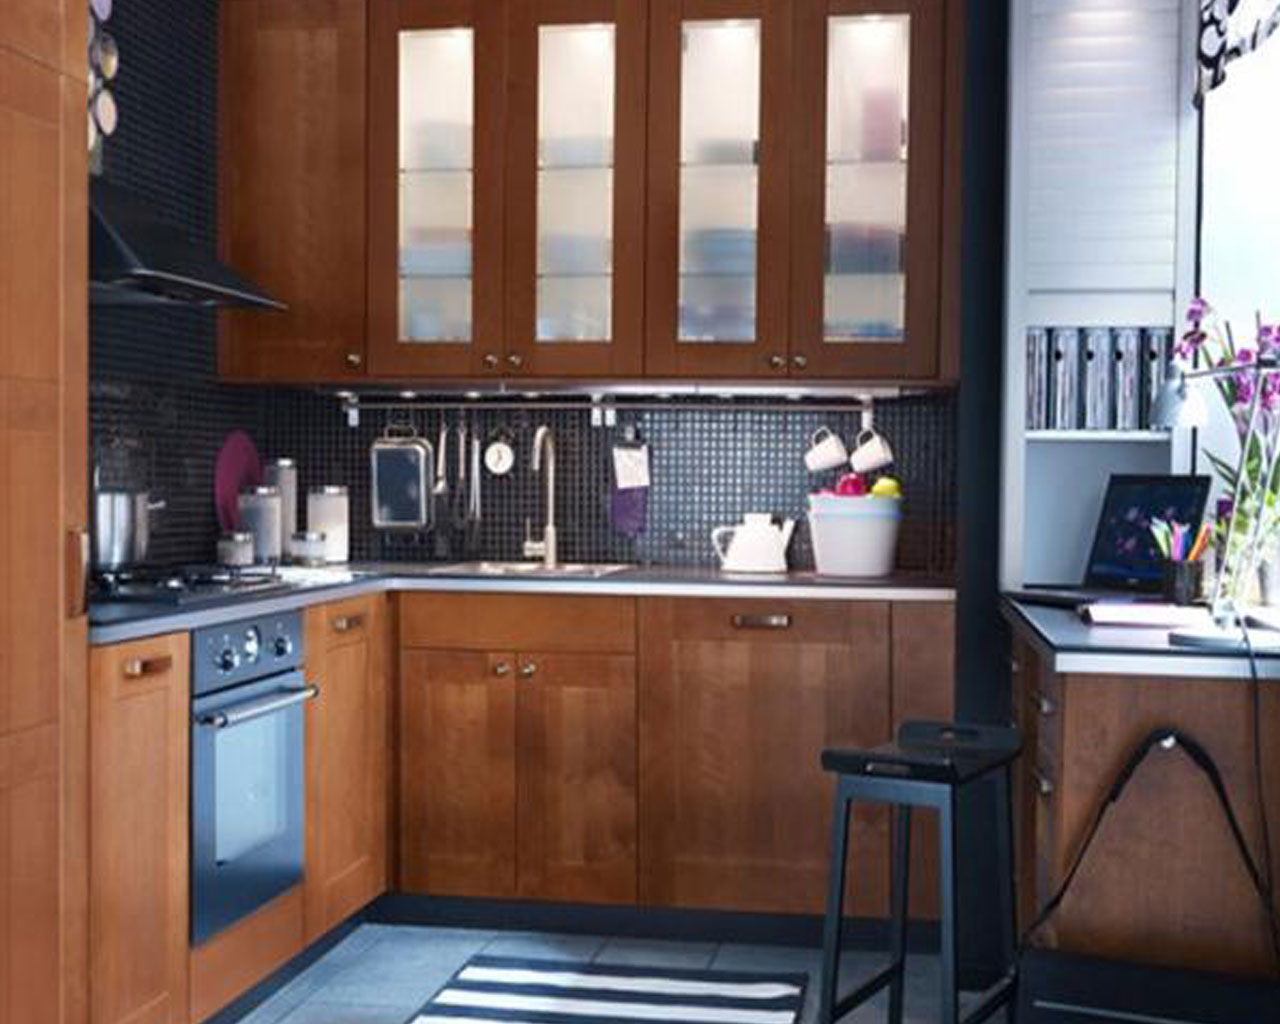 Free Download Room Design Ideas By Ikea Wallpaper Delightful Kitchen And Dining Room 1280x1024 For Your Desktop Mobile Tablet Explore 48 Wallpaper For Kitchen Diner Country Kitchen Wallpaper Birch